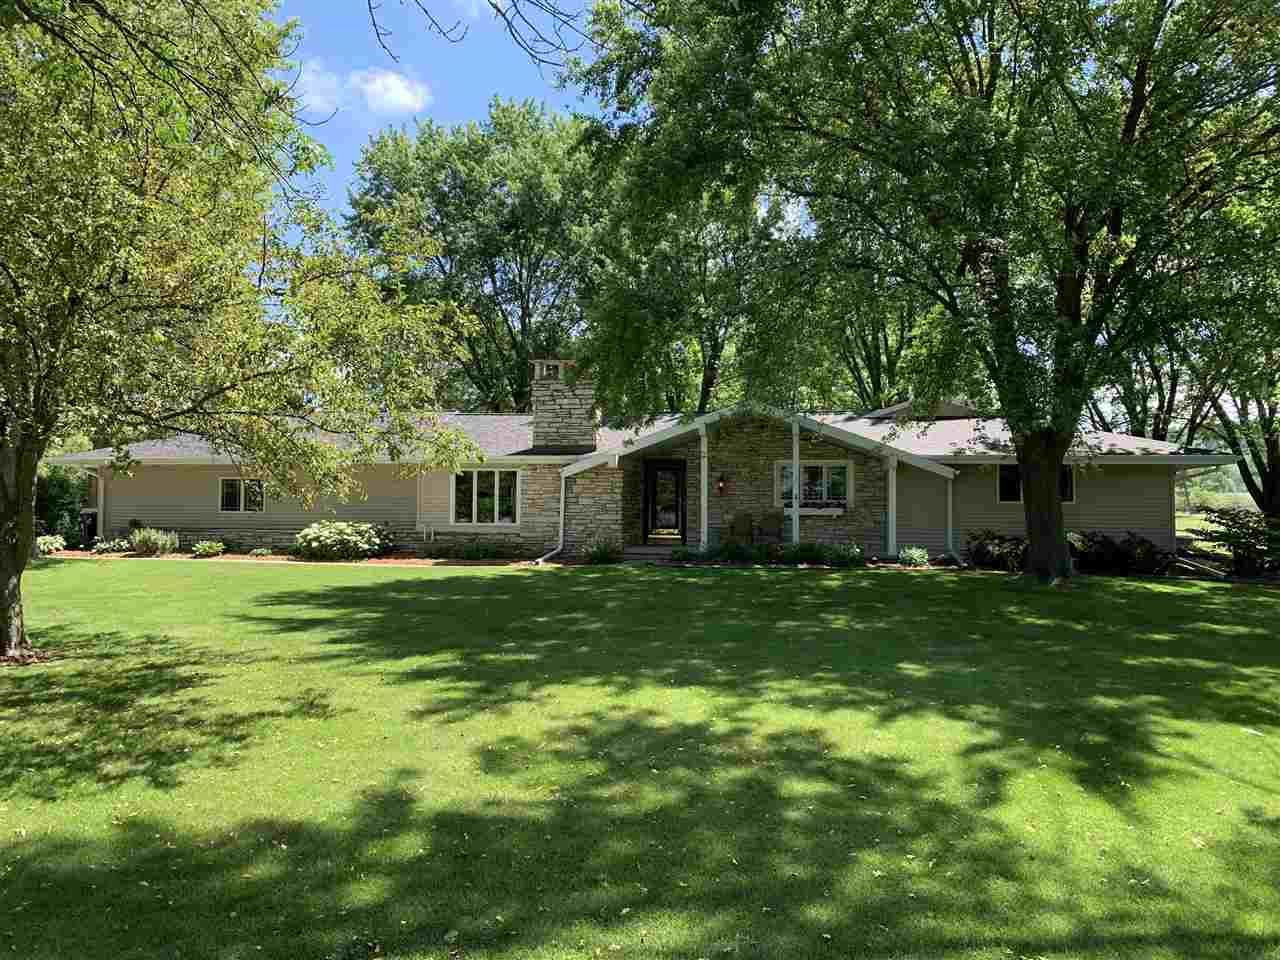 Photo for N7790 SPURLINE Court, SHERWOOD, WI 54169 (MLS # 50243538)